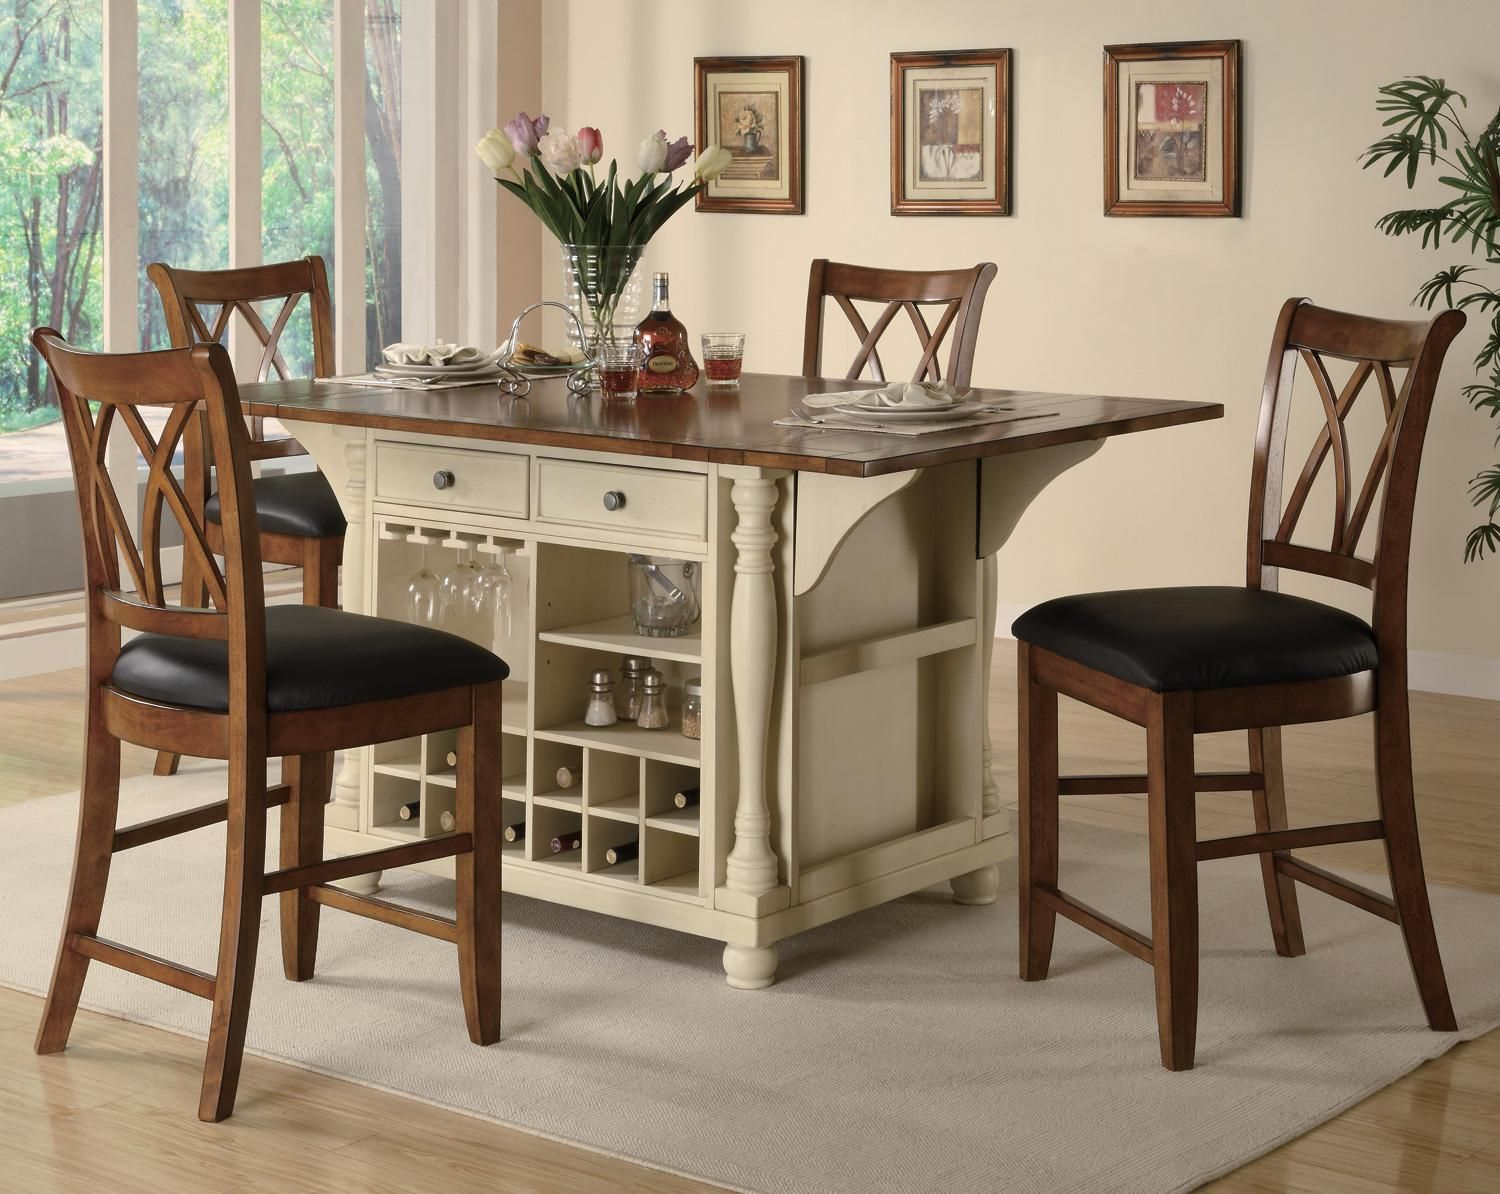 Tall Kitchen Table And Chairs Dinette Sets Kitchen Table